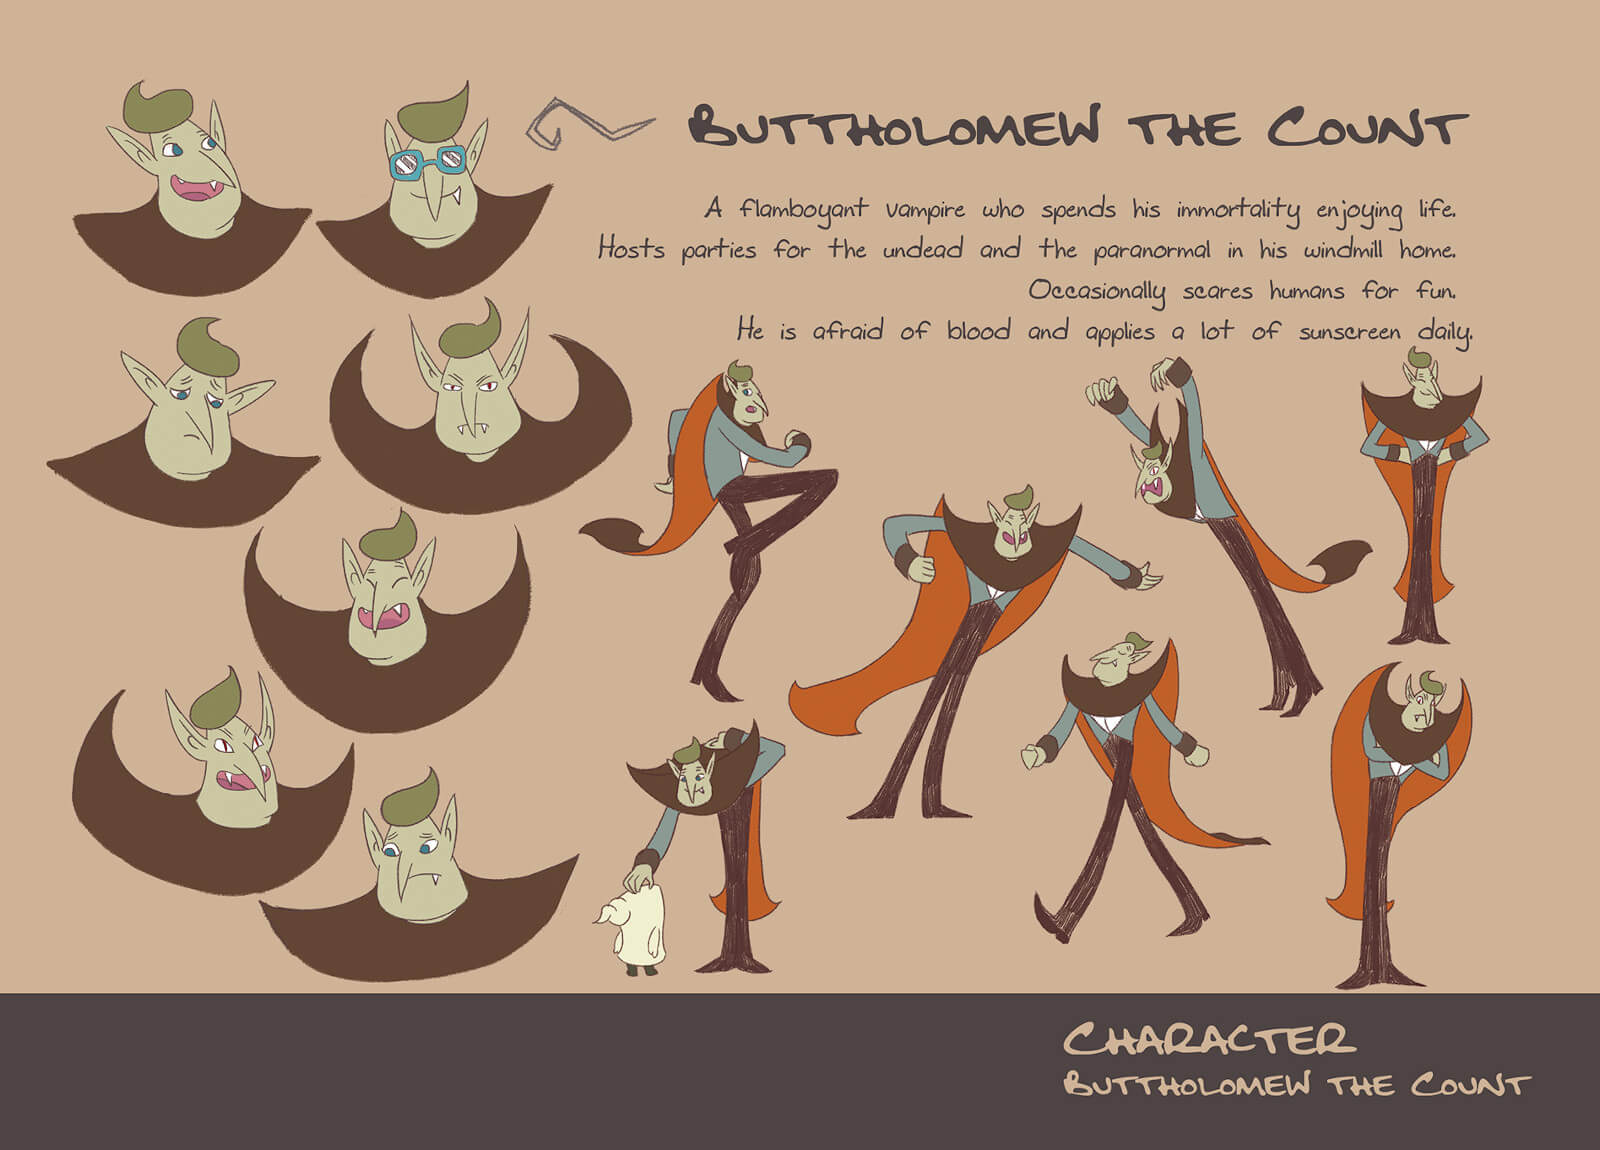 Character art for Buttholomew the Count